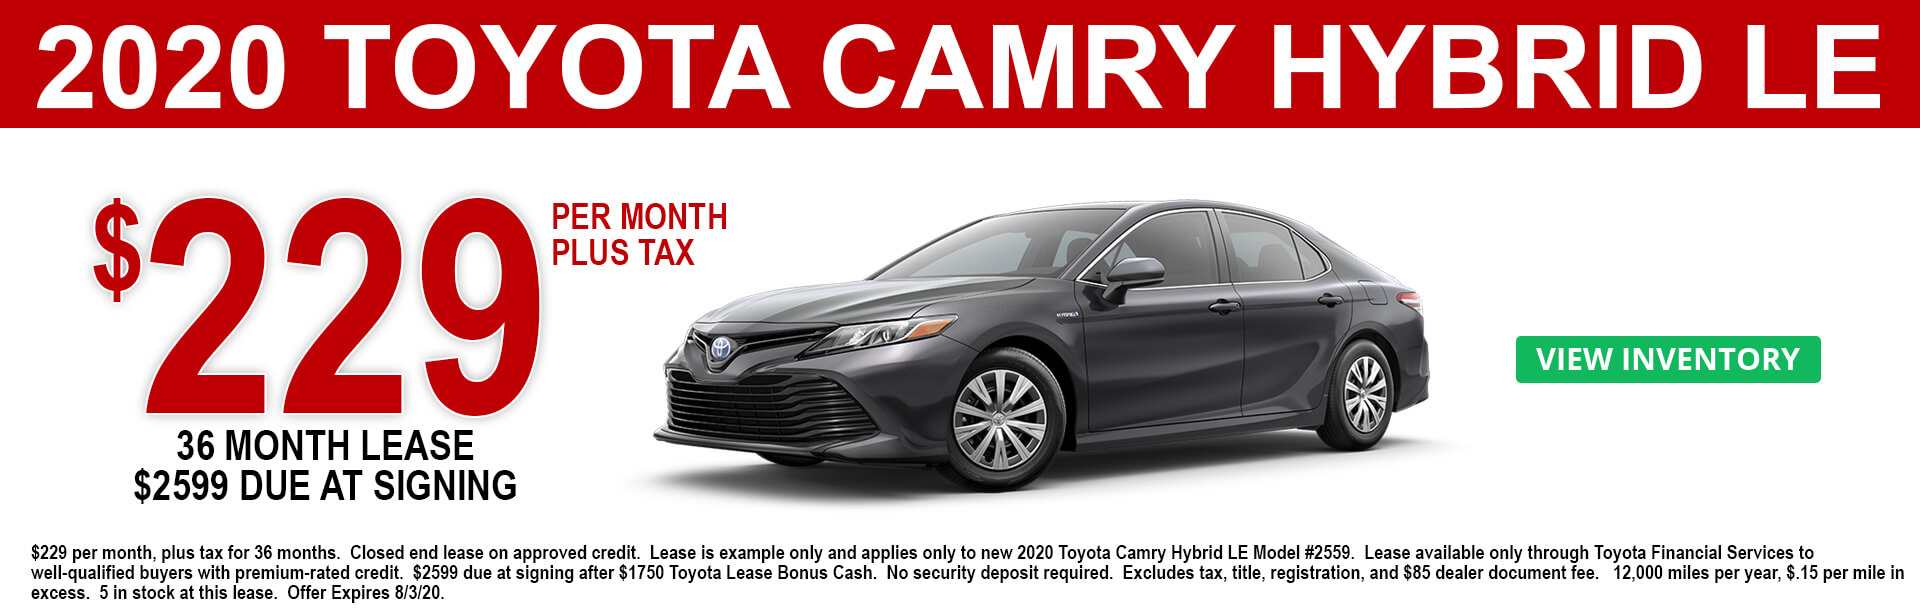 2020 Toyota Camry Hybrid LE Lease Offer $229 a month